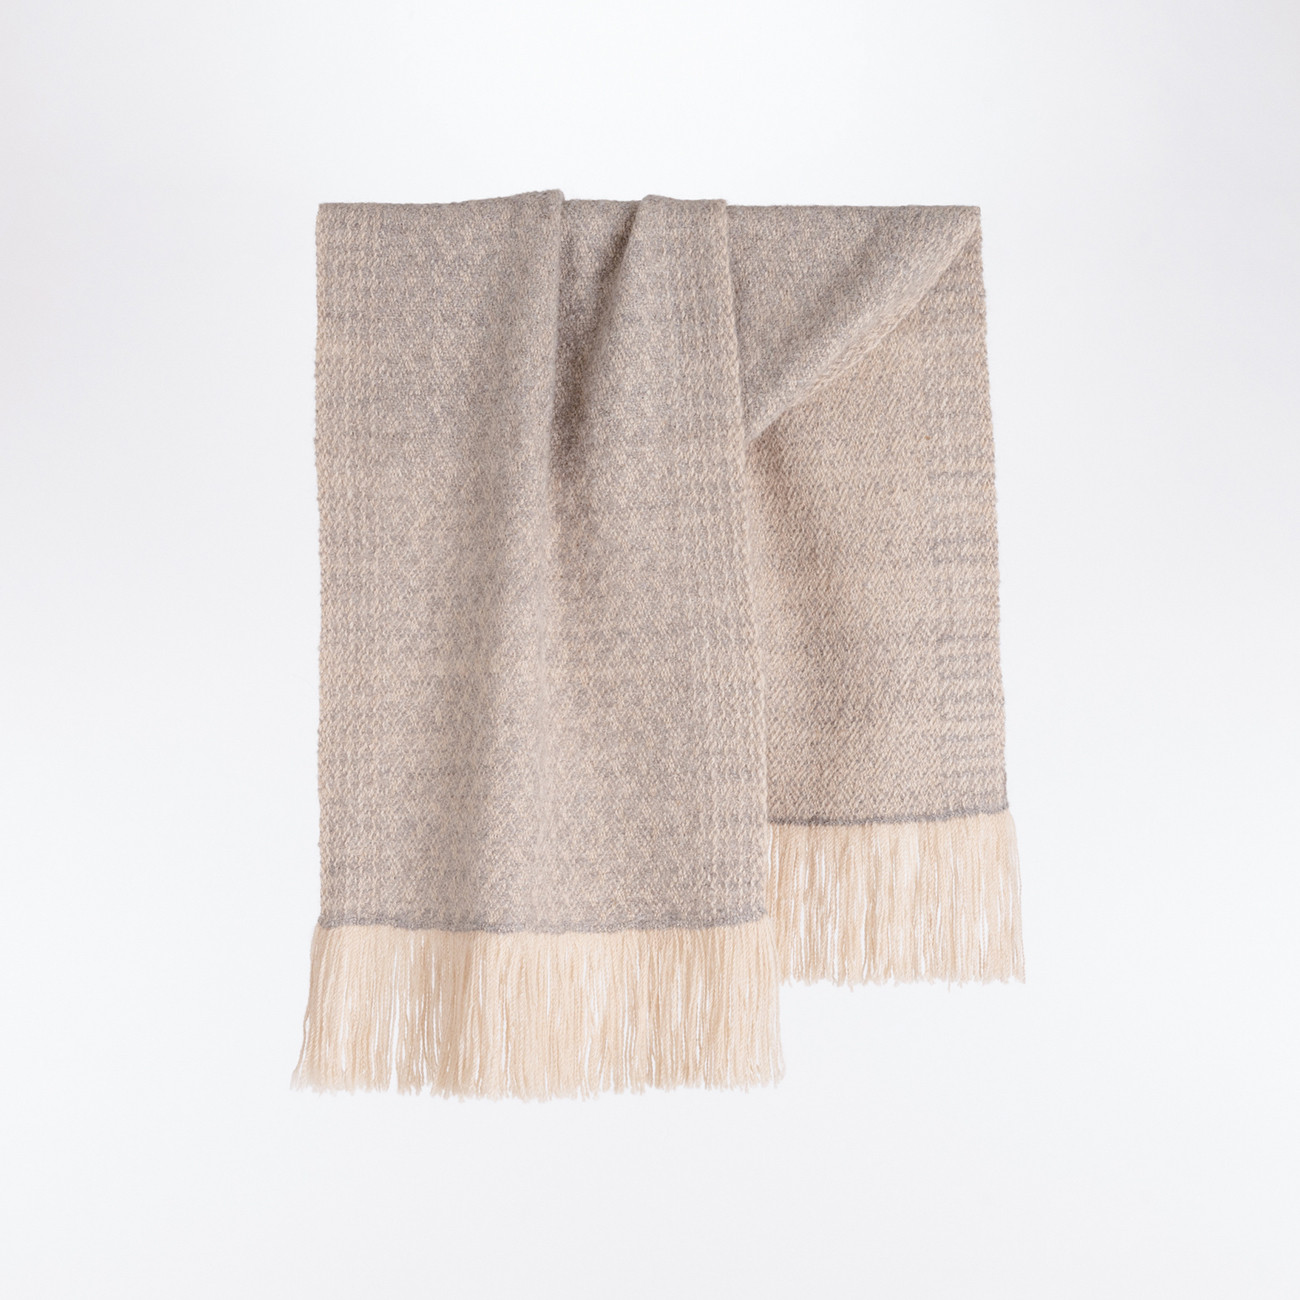 Handwoven Pinebark Wide Scarf - Natural Light Grey and Cream Alpaca - 0